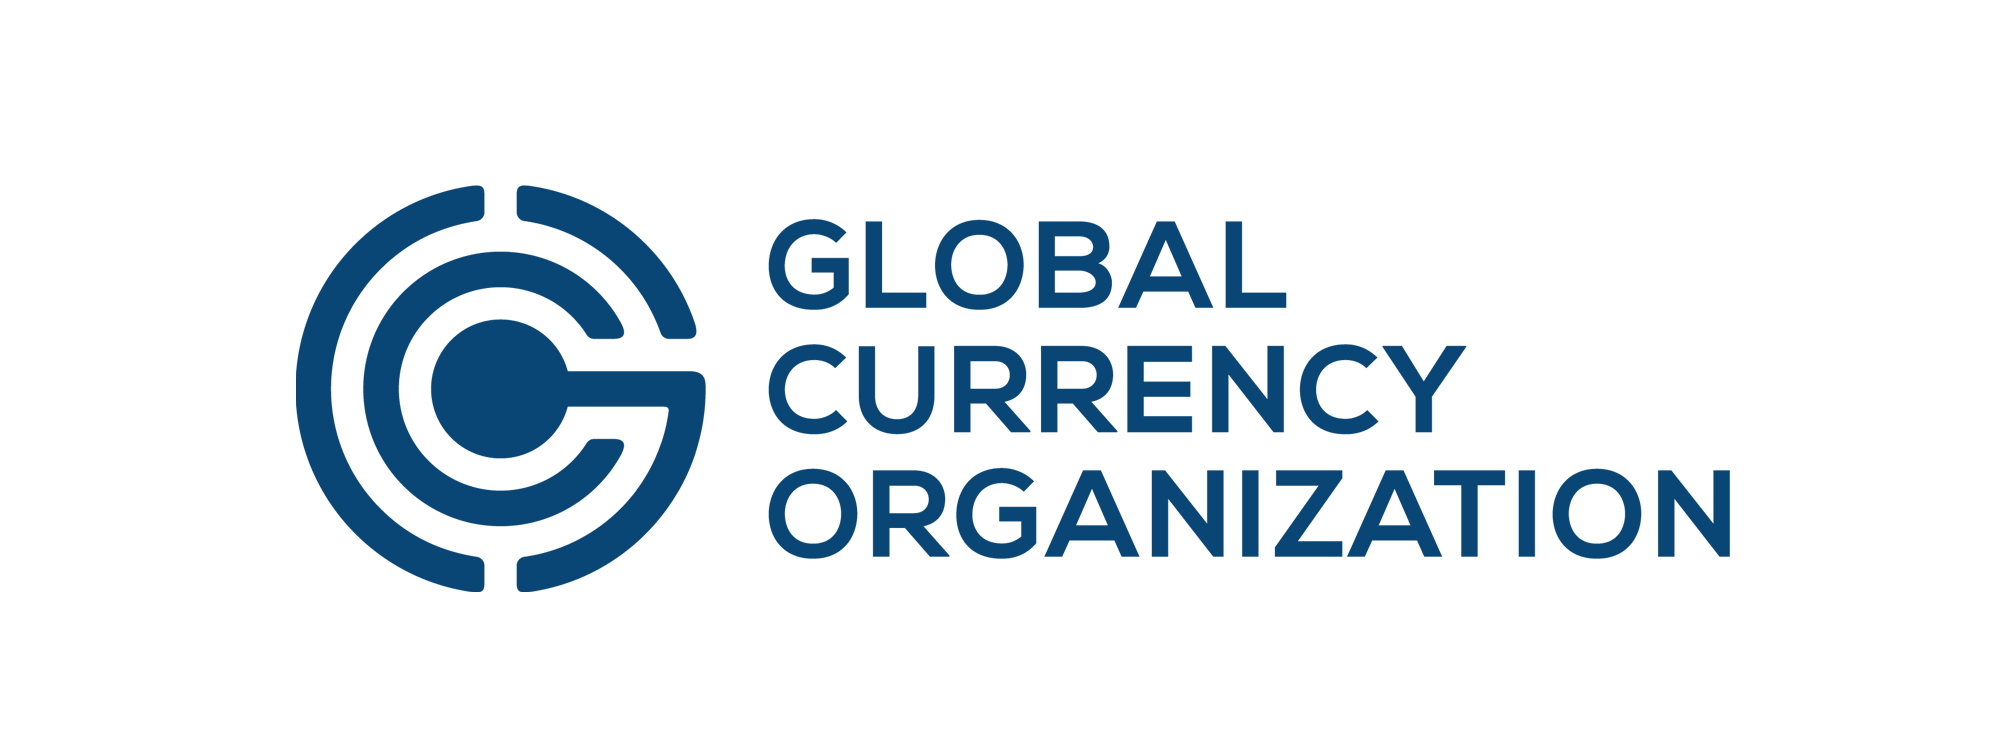 Global Currency Organization (GCO)